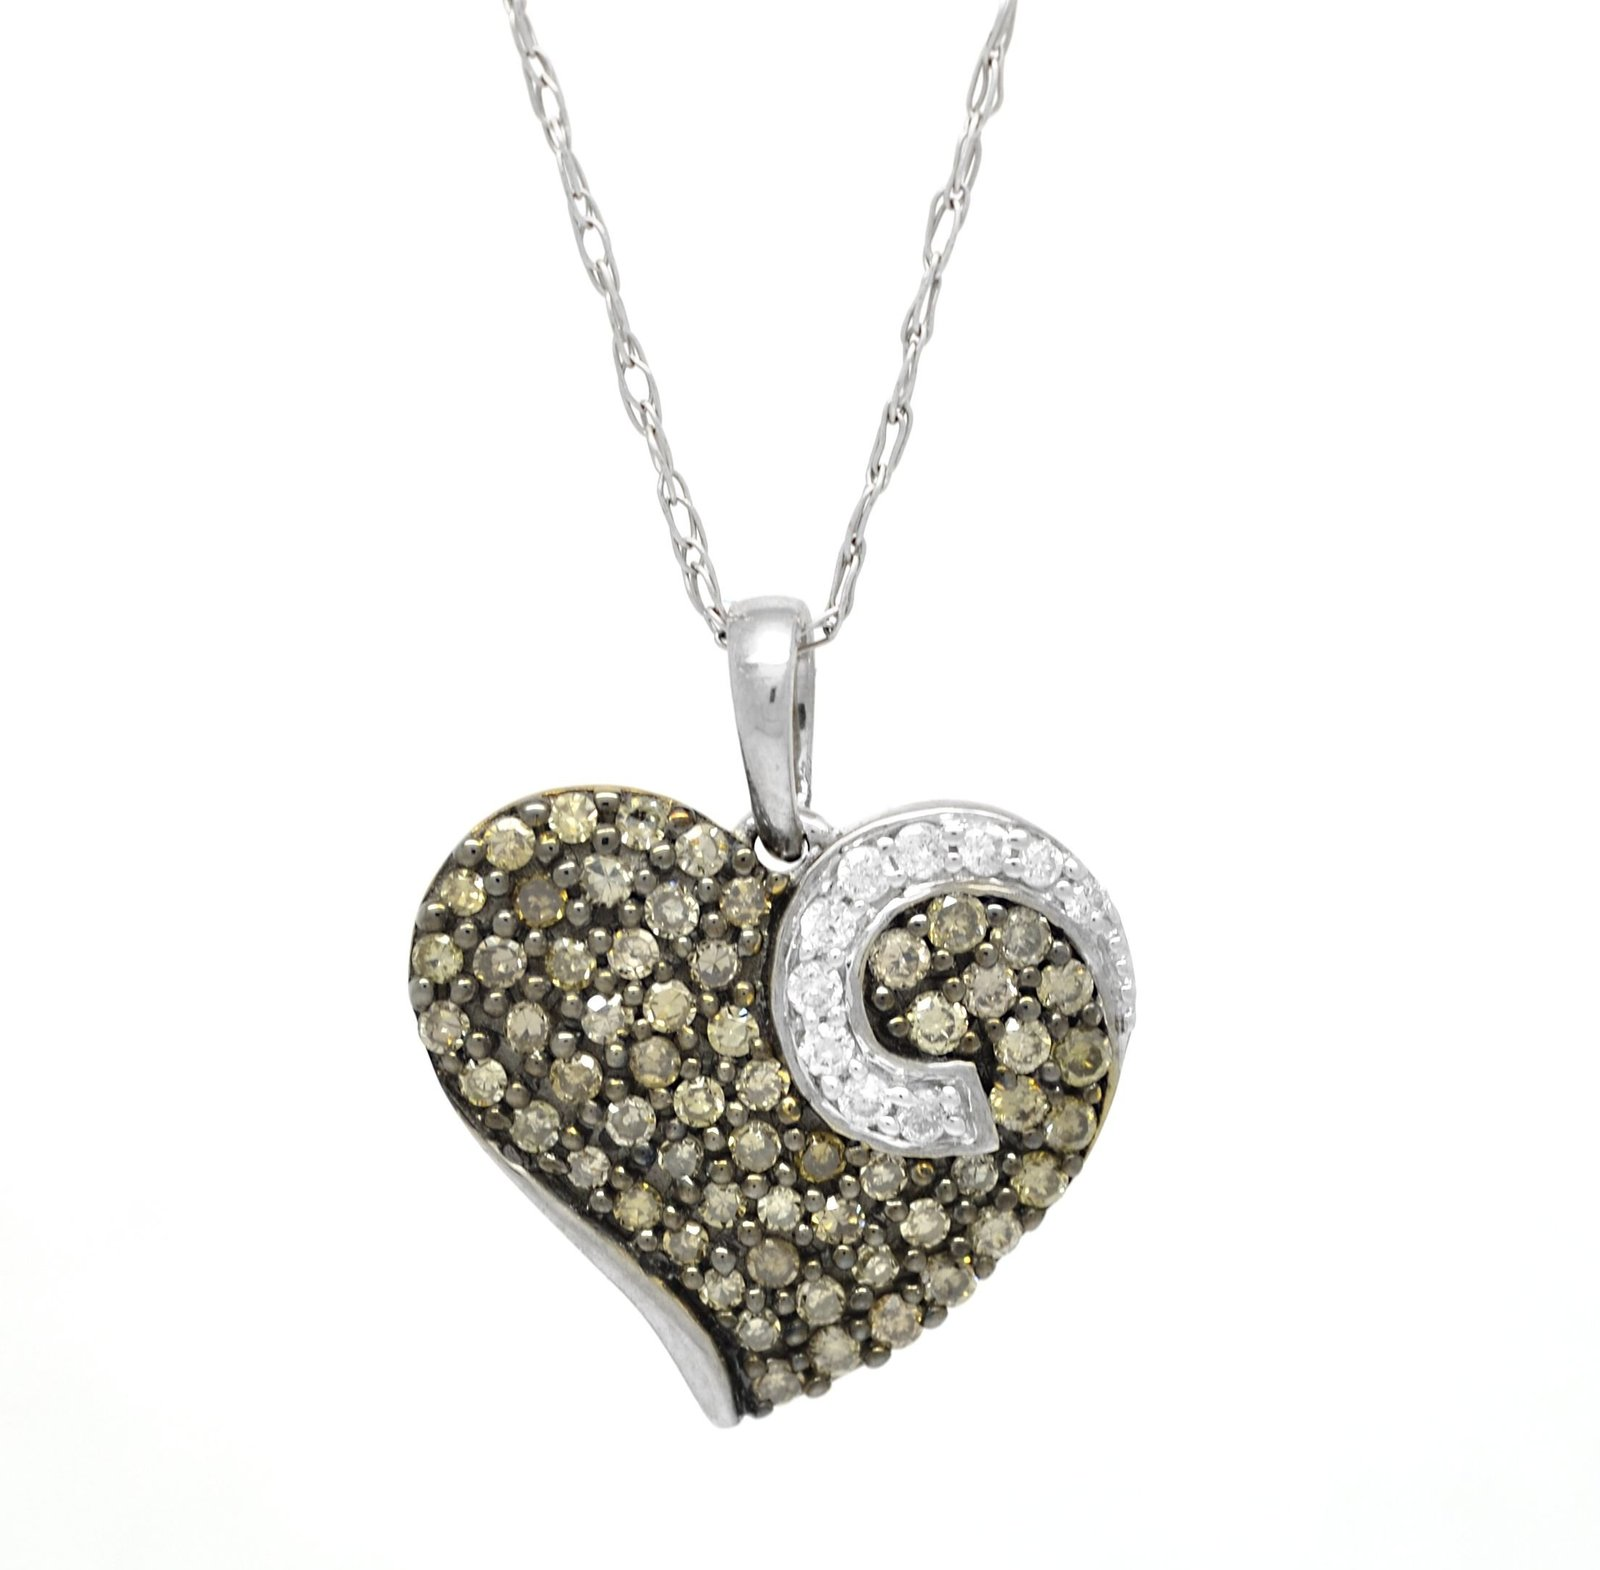 10K 0.50 Ct White Gold Brown Diamond Heart Pendant with 10 K Cable Chain 18 Inch